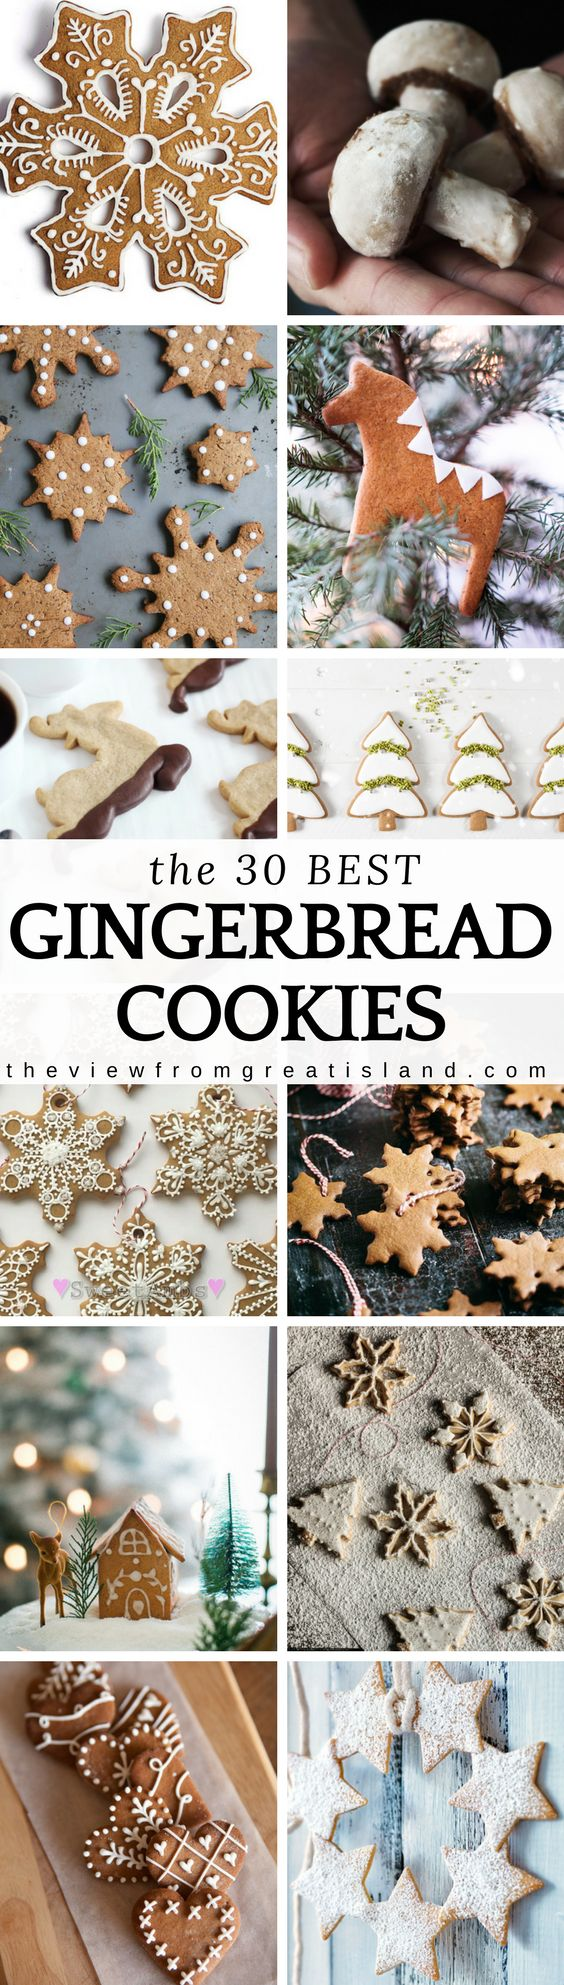 What to Bake Now: Gingerbread Cookies ~ they can be deep, dark, and chewy, or light and crisp ~ they can be frosted, glazed, sprinkled or plain ~ but whichever way you roll, gingerbread is the cookie of the moment ~ here are the 30 best gingerbread cookie recipes to get you started.